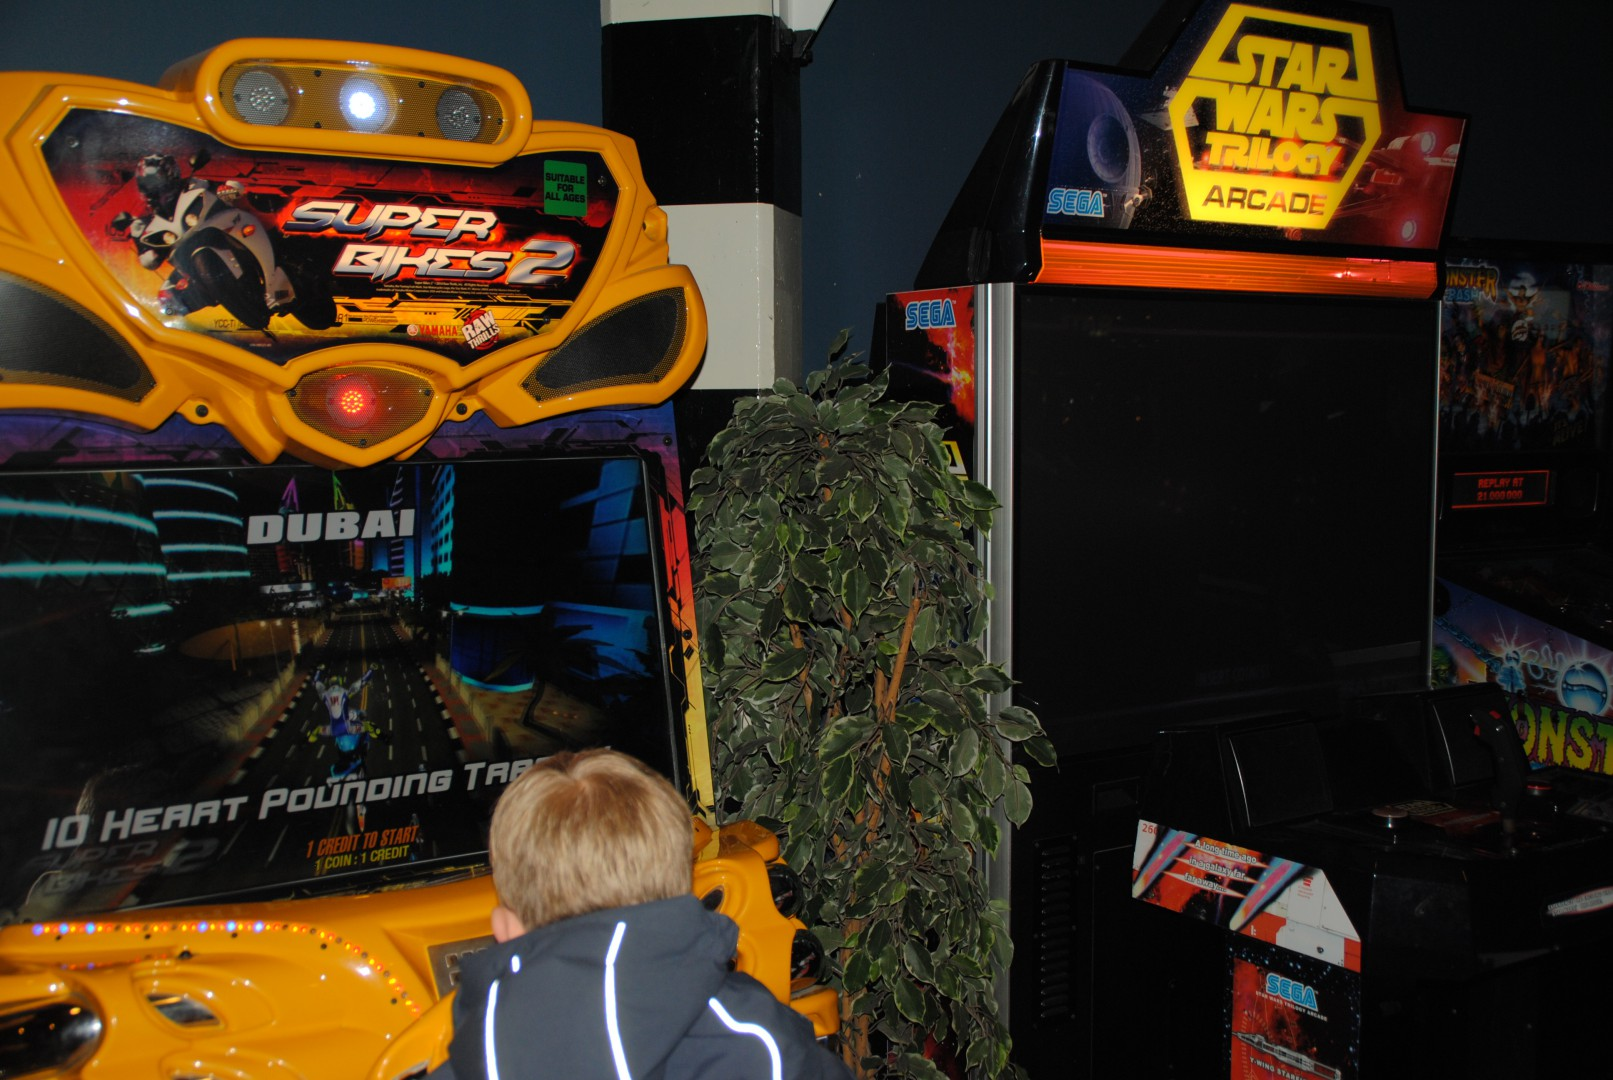 Super bikes 2 and STAR WARS TRILOGY Arcade / At Liseberg Fun Fair